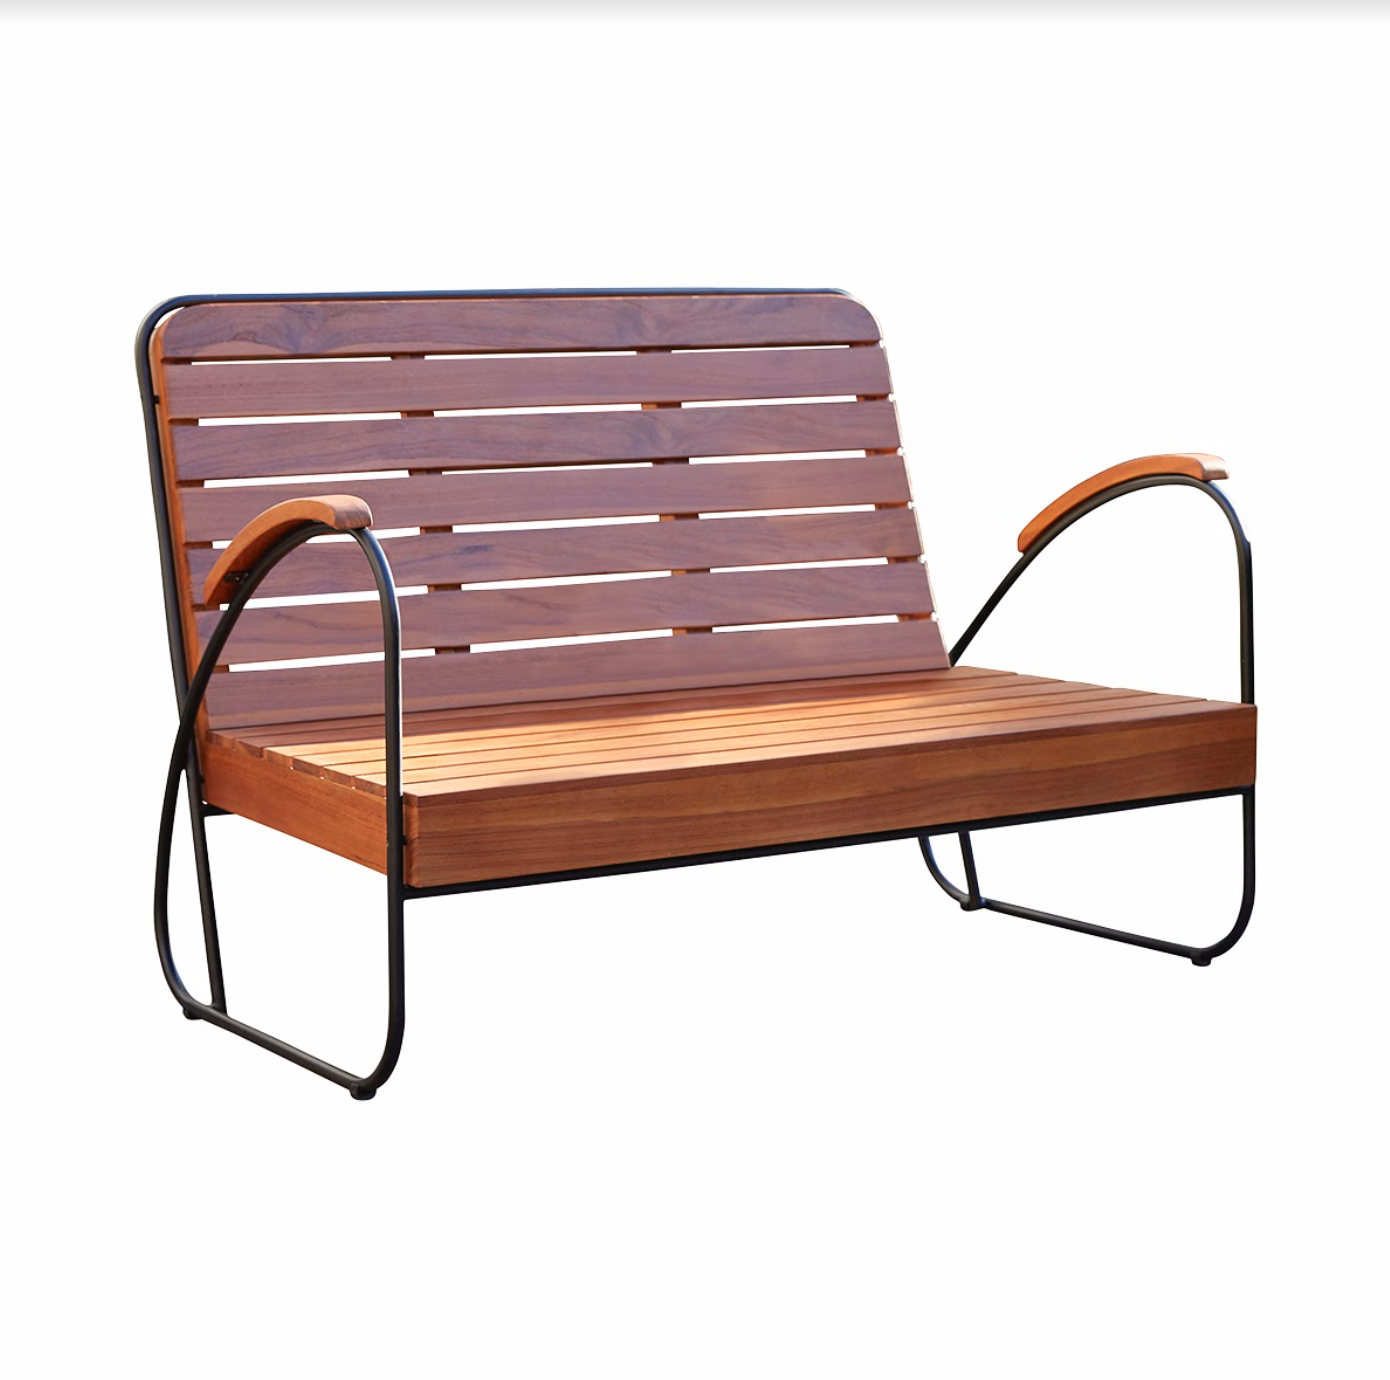 Wood and metal mid century retro style outdoor bench